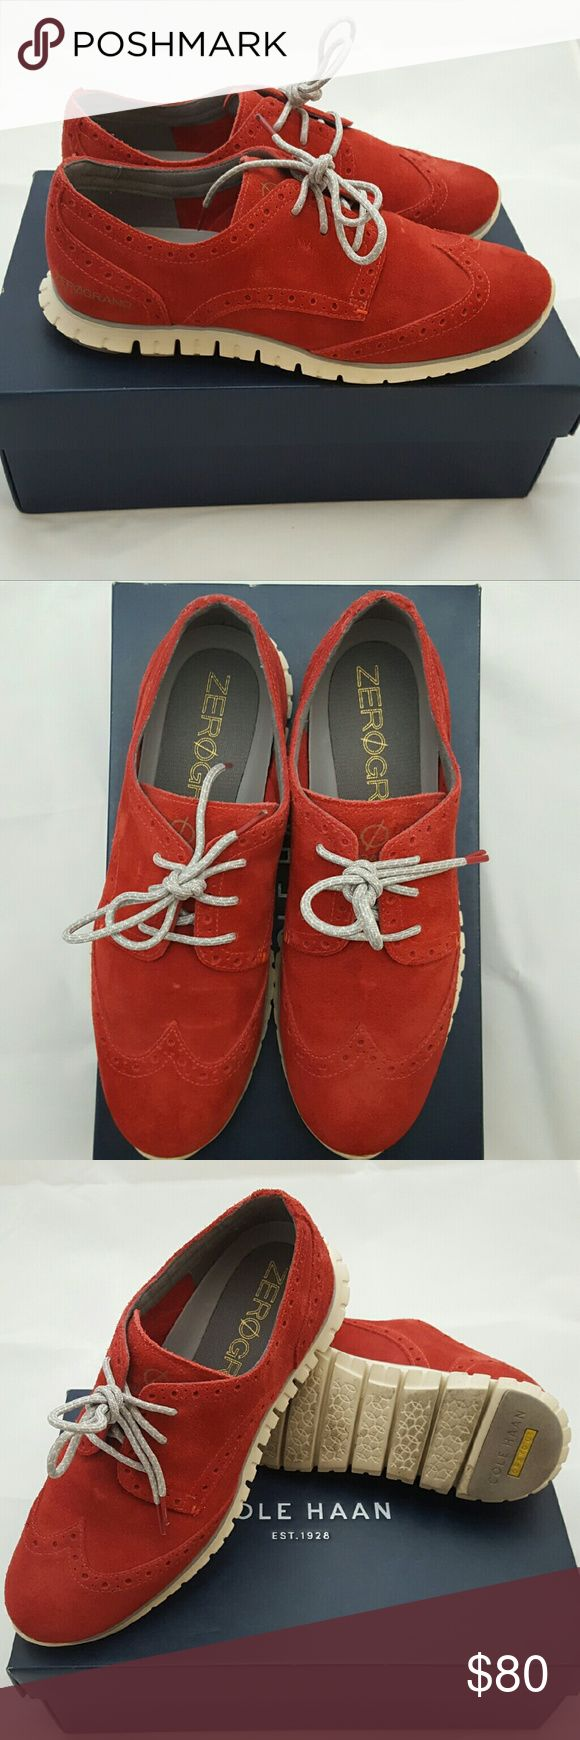 Cole Haan ZeroGrand Wingtip Red Suede Size 7 Worn with love! Worn 4 or 5 times. No stain on suede. So comfortable! Sold to me at Cole Haan San Francisco Outlet without original box, but they gave me a Cole Haan box. Smoke free home. Cole Haan Shoes Sneakers